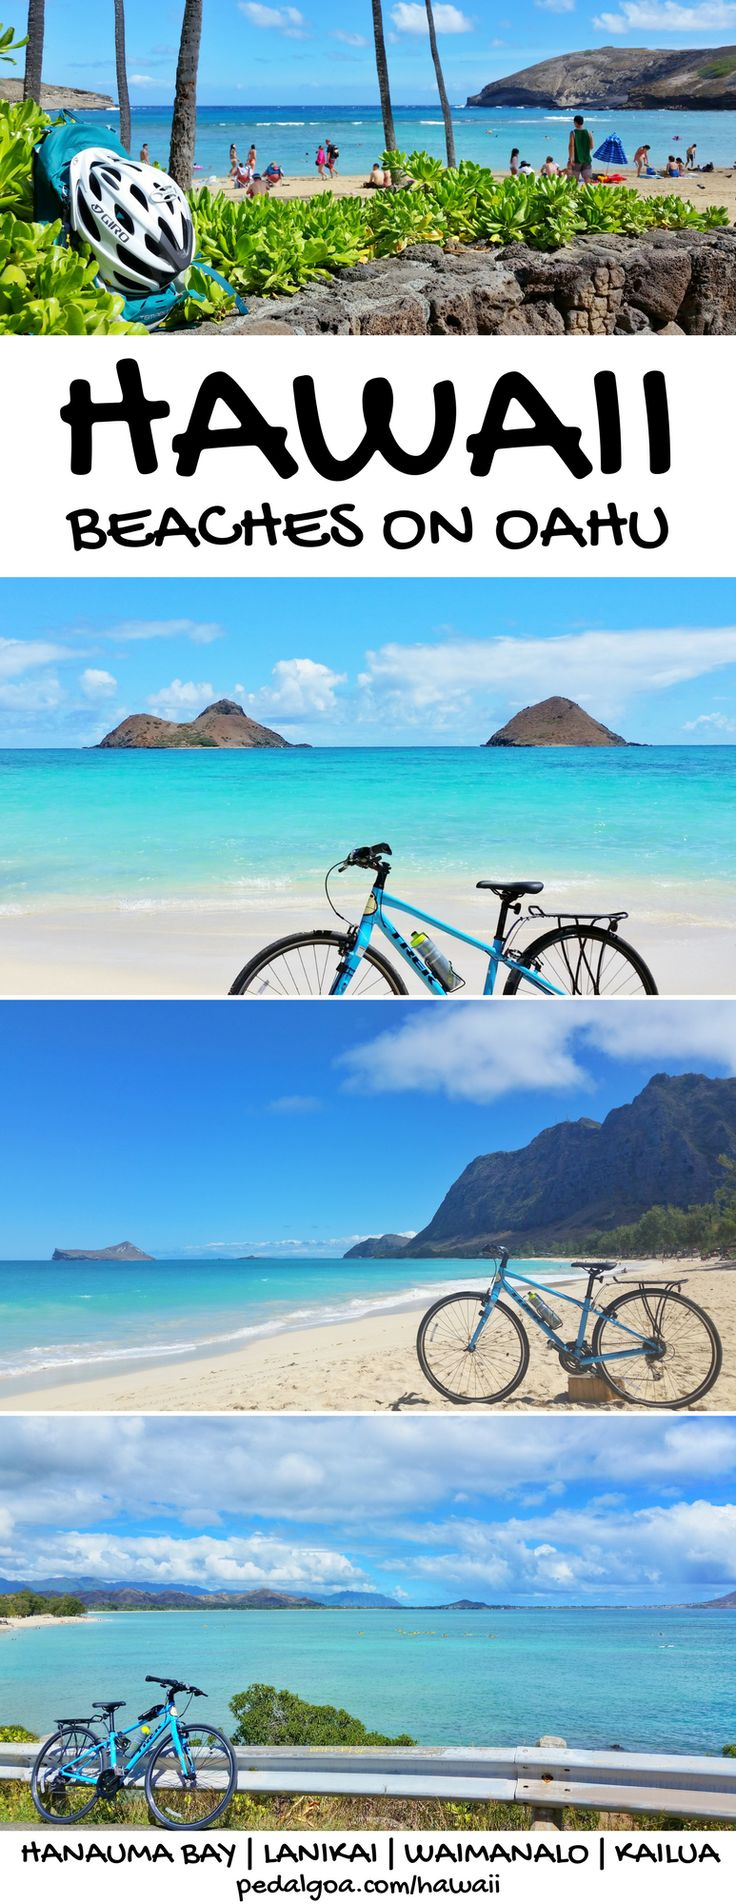 Hawaii beaches and vacation tips with things to do in Oahu Hawaii as outdoor activities like biking, hikes, beaches, snorkeling from Waikiki, Kailua, Lanikai, Honolulu, with Oahu map. Checklist of Oahu activities for Hawaii bucket list destinations. Use it as a potential day trip itinerary as a self-guided tour with Hawaii cycling! North Shore has a bike path too!USA travel destinations for world adventures! So put outfits on the Hawaii packing list for what to wear and what to pack for…